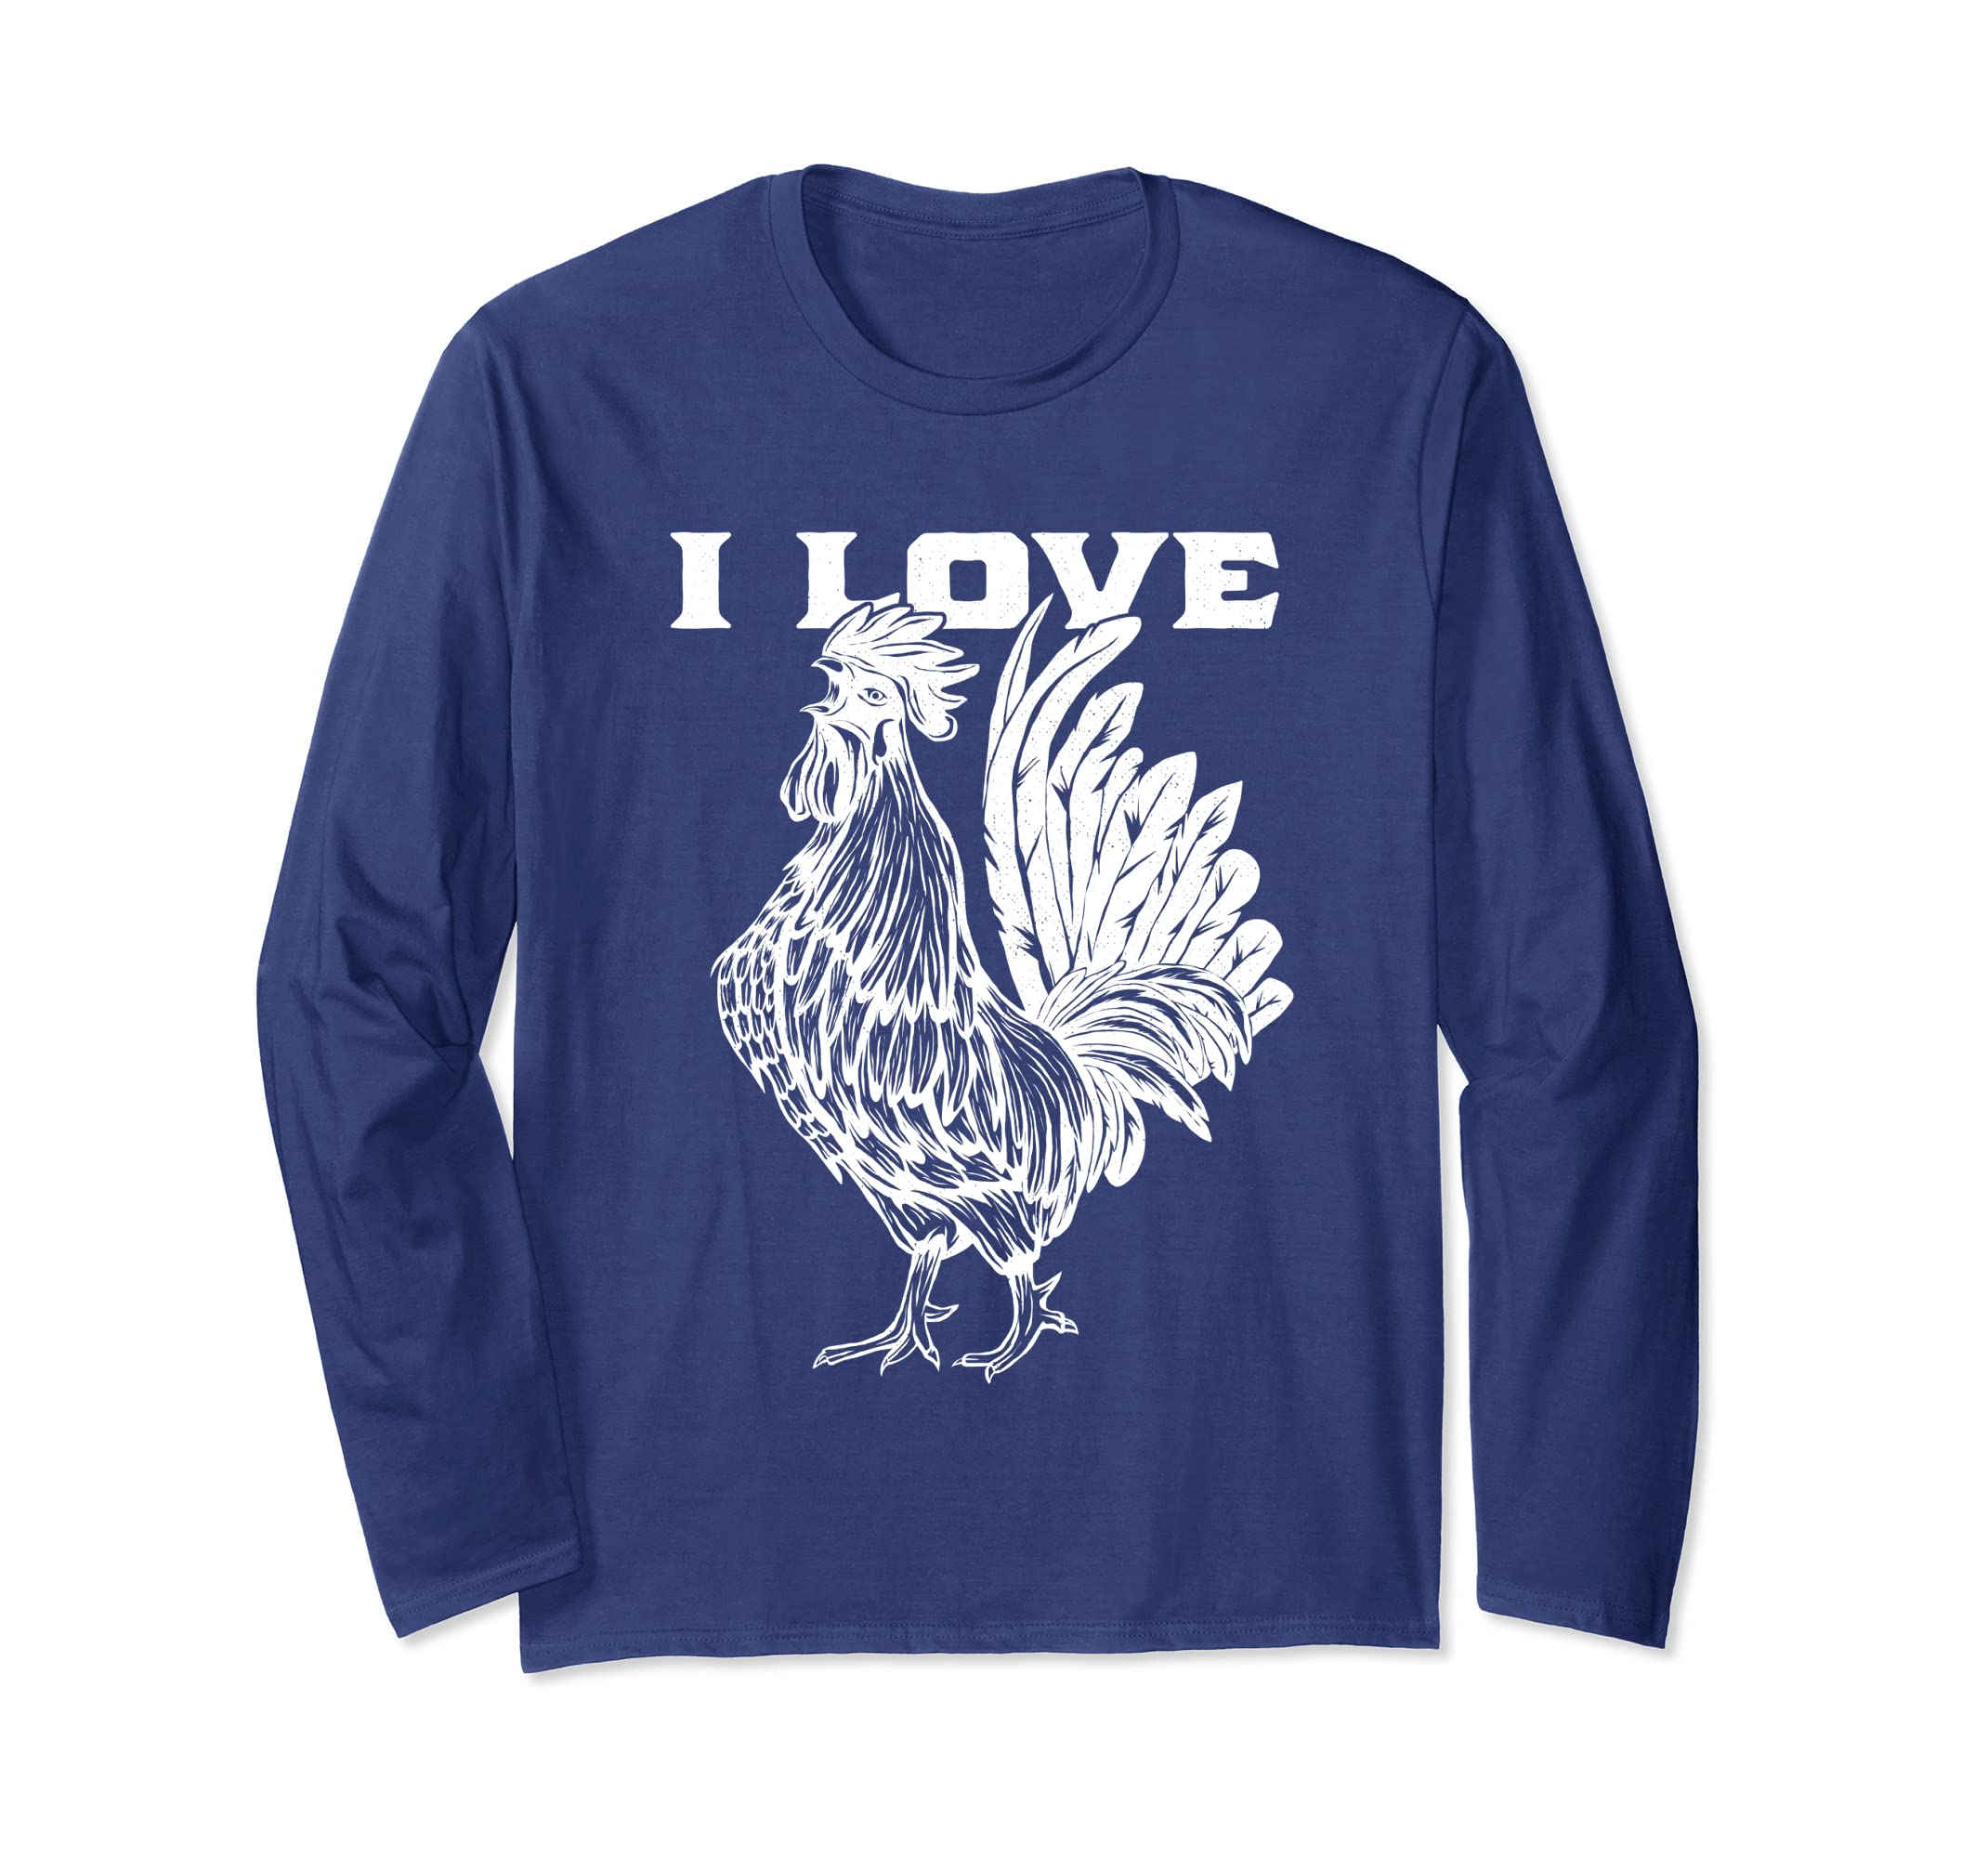 f32db7b2c Amazon.com: Funny I Love Cock Shirt Rooster Lover I Love Roosters: Clothing